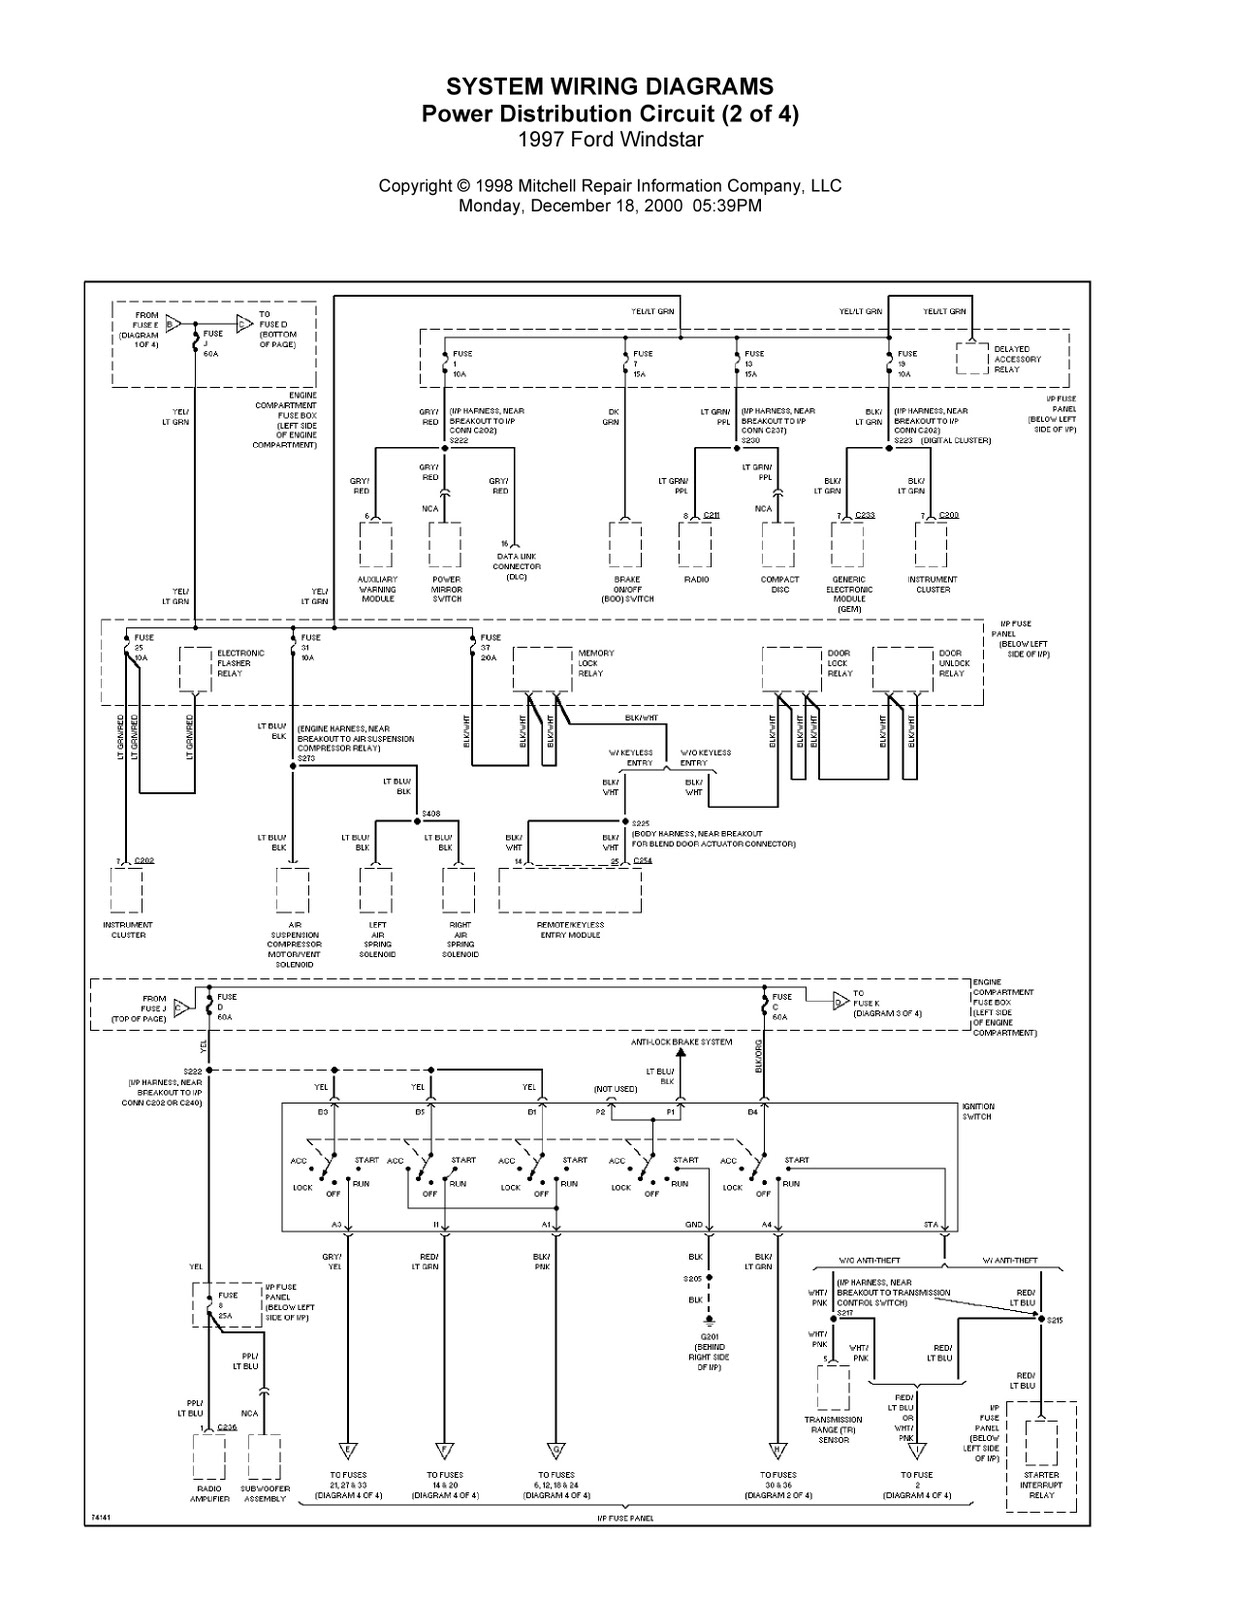 small resolution of 1997 ford windstar complete system wiring diagrams ford windstar wiring schematic